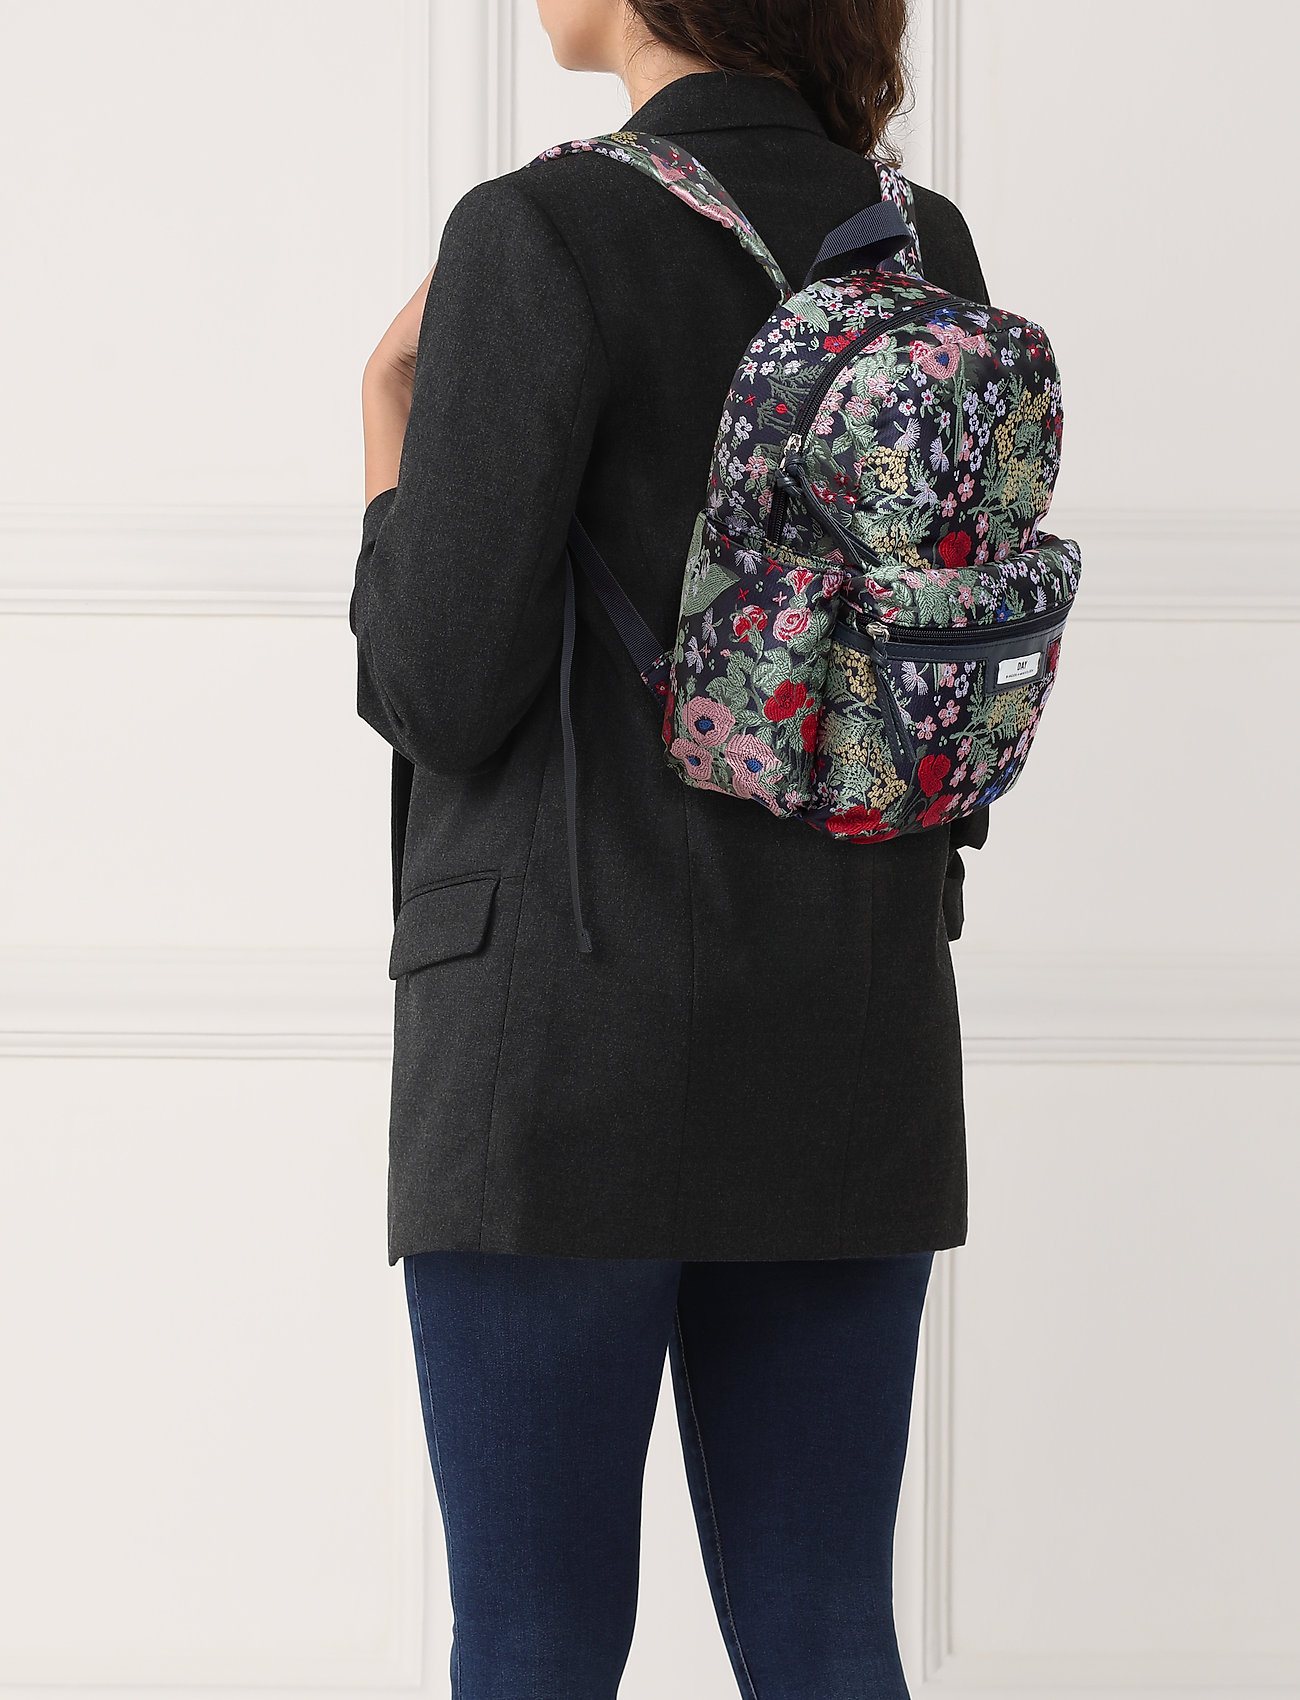 DAY et Day Gweneth Bloomy BP S - MULTI COLOUR